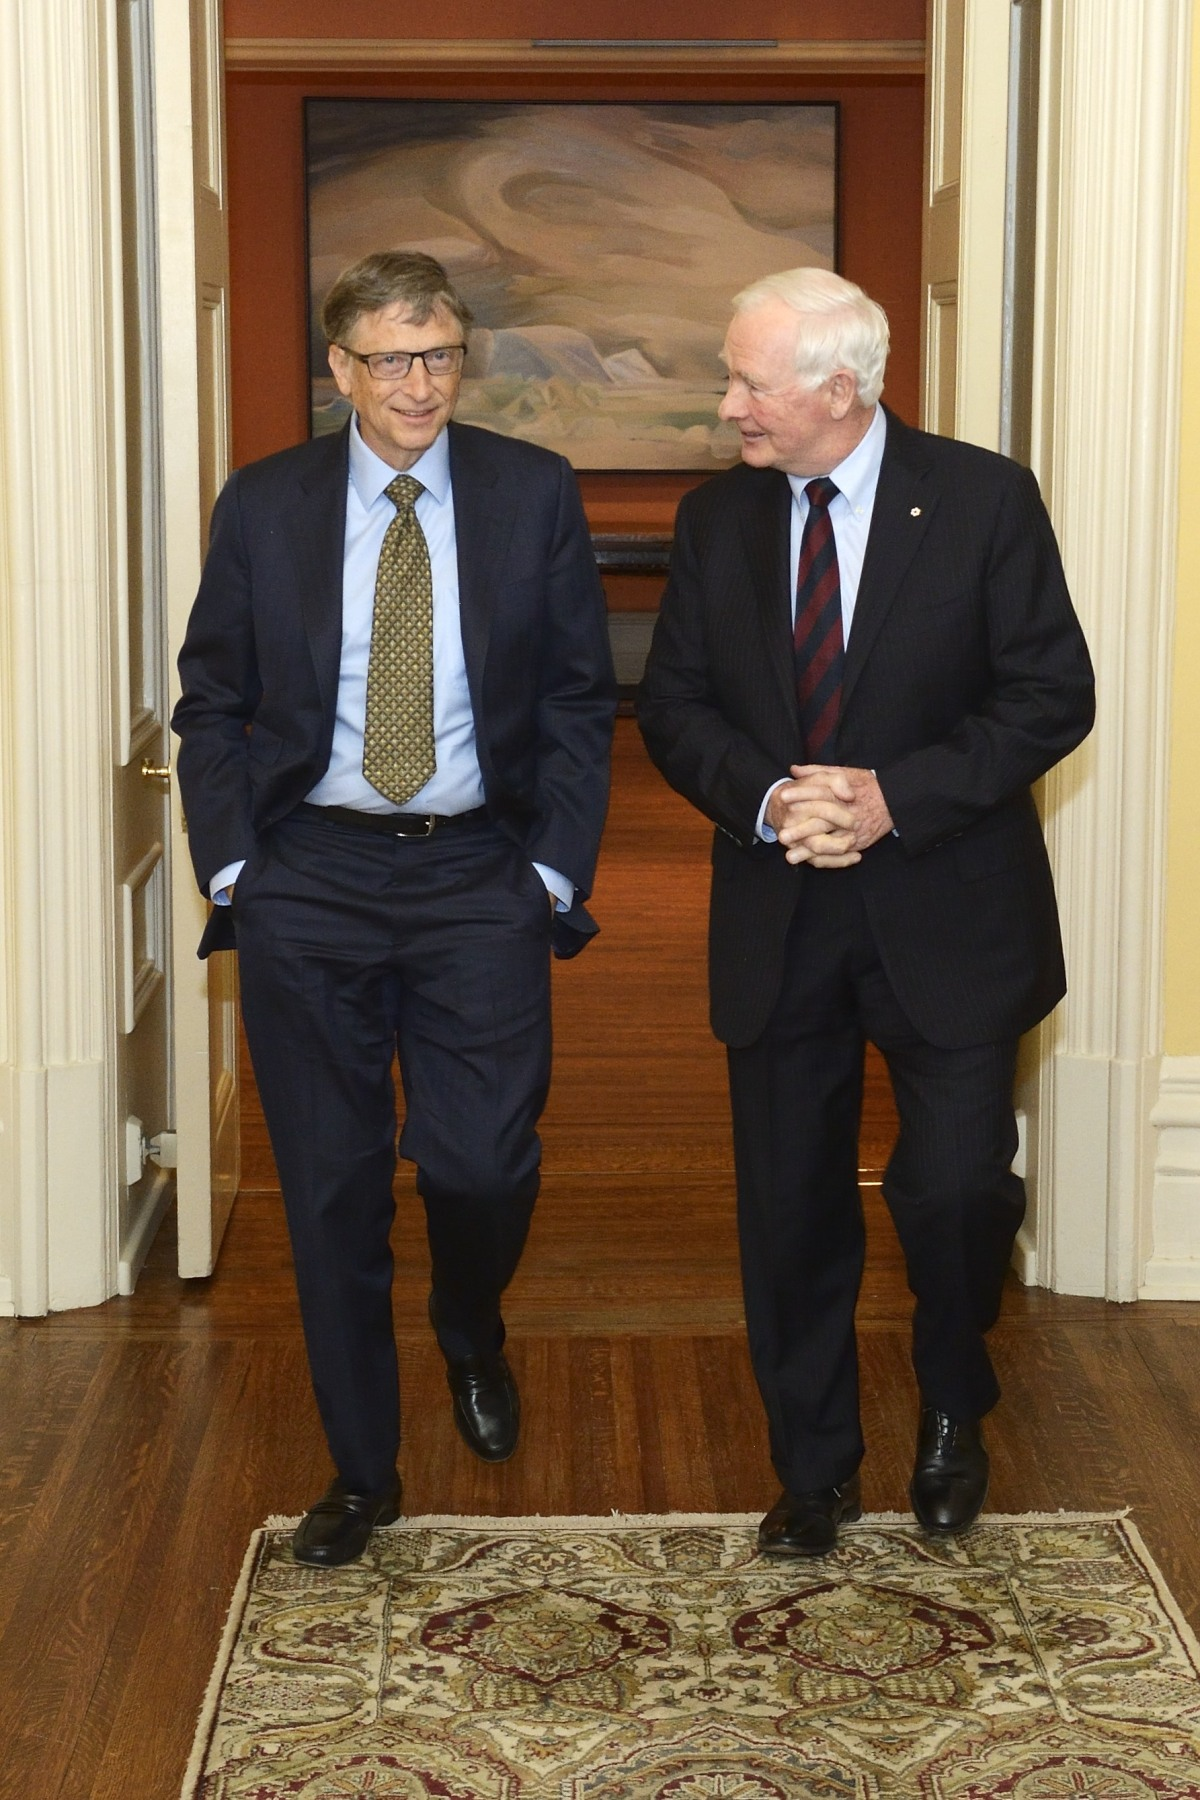 Before the official meeting, His Excellency discussed informally with Mr. Gates.